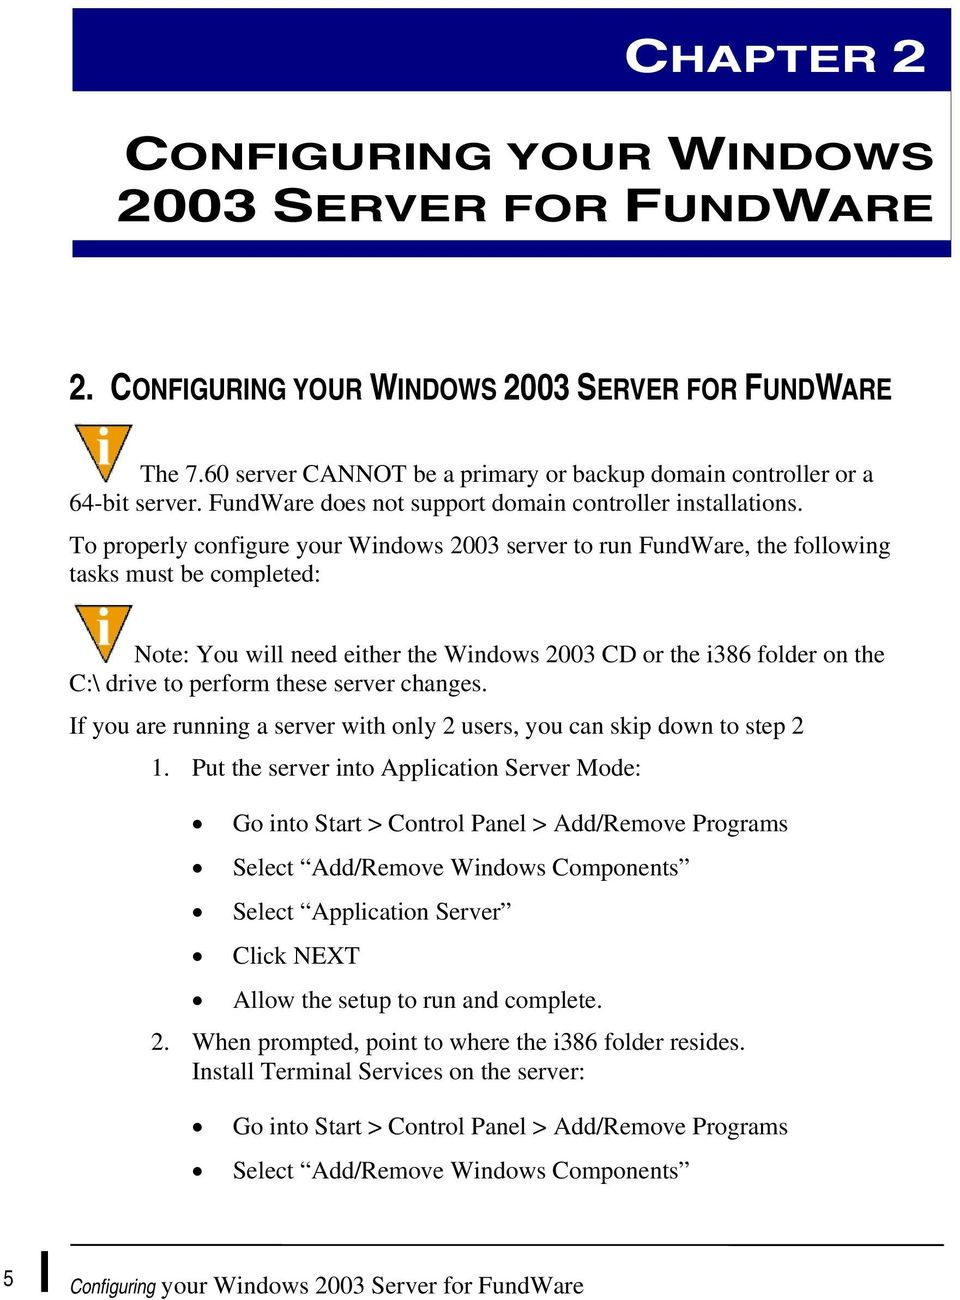 To properly configure your Windows 2003 server to run FundWare, the following tasks must be completed: Note: You will need either the Windows 2003 CD or the i386 folder on the C:\ drive to perform